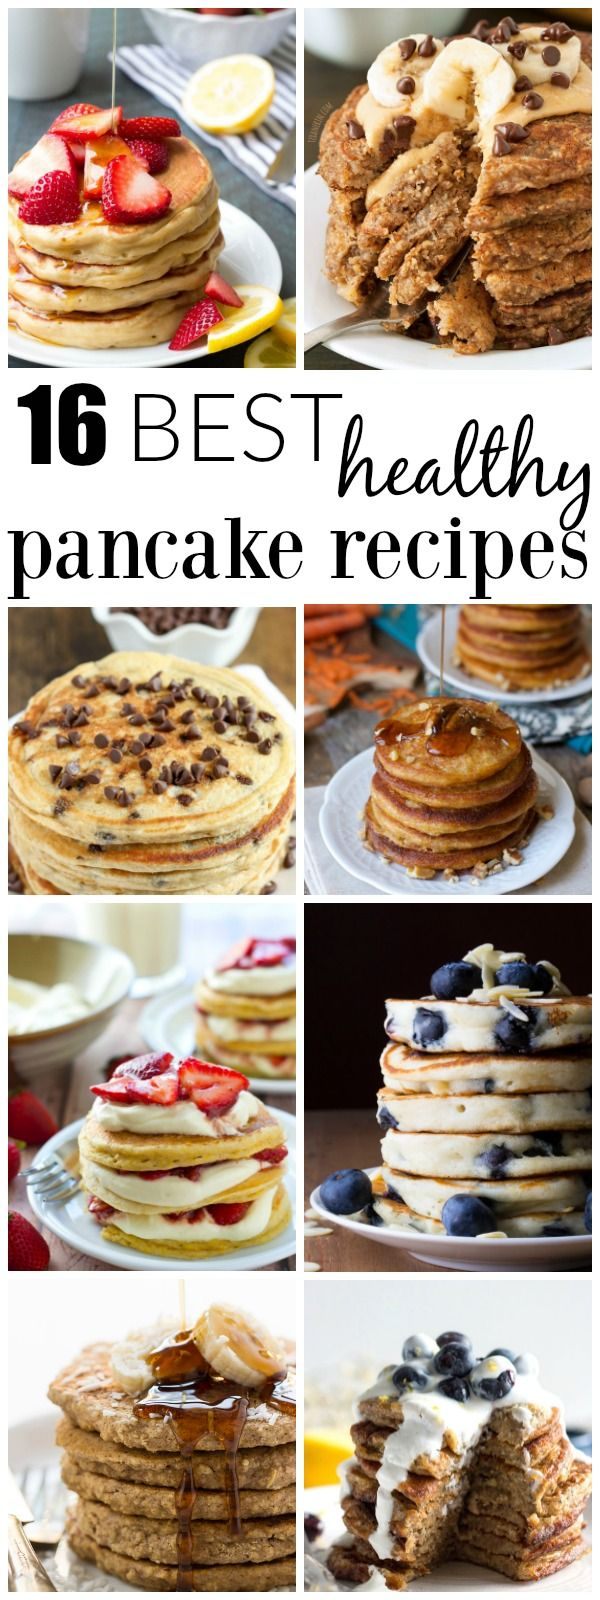 The best healthy pancake recipes, perfect for a weekend breakfast, Mother's Day, or breakfast for dinner! Most of these easy recipes are freezer-friendly!